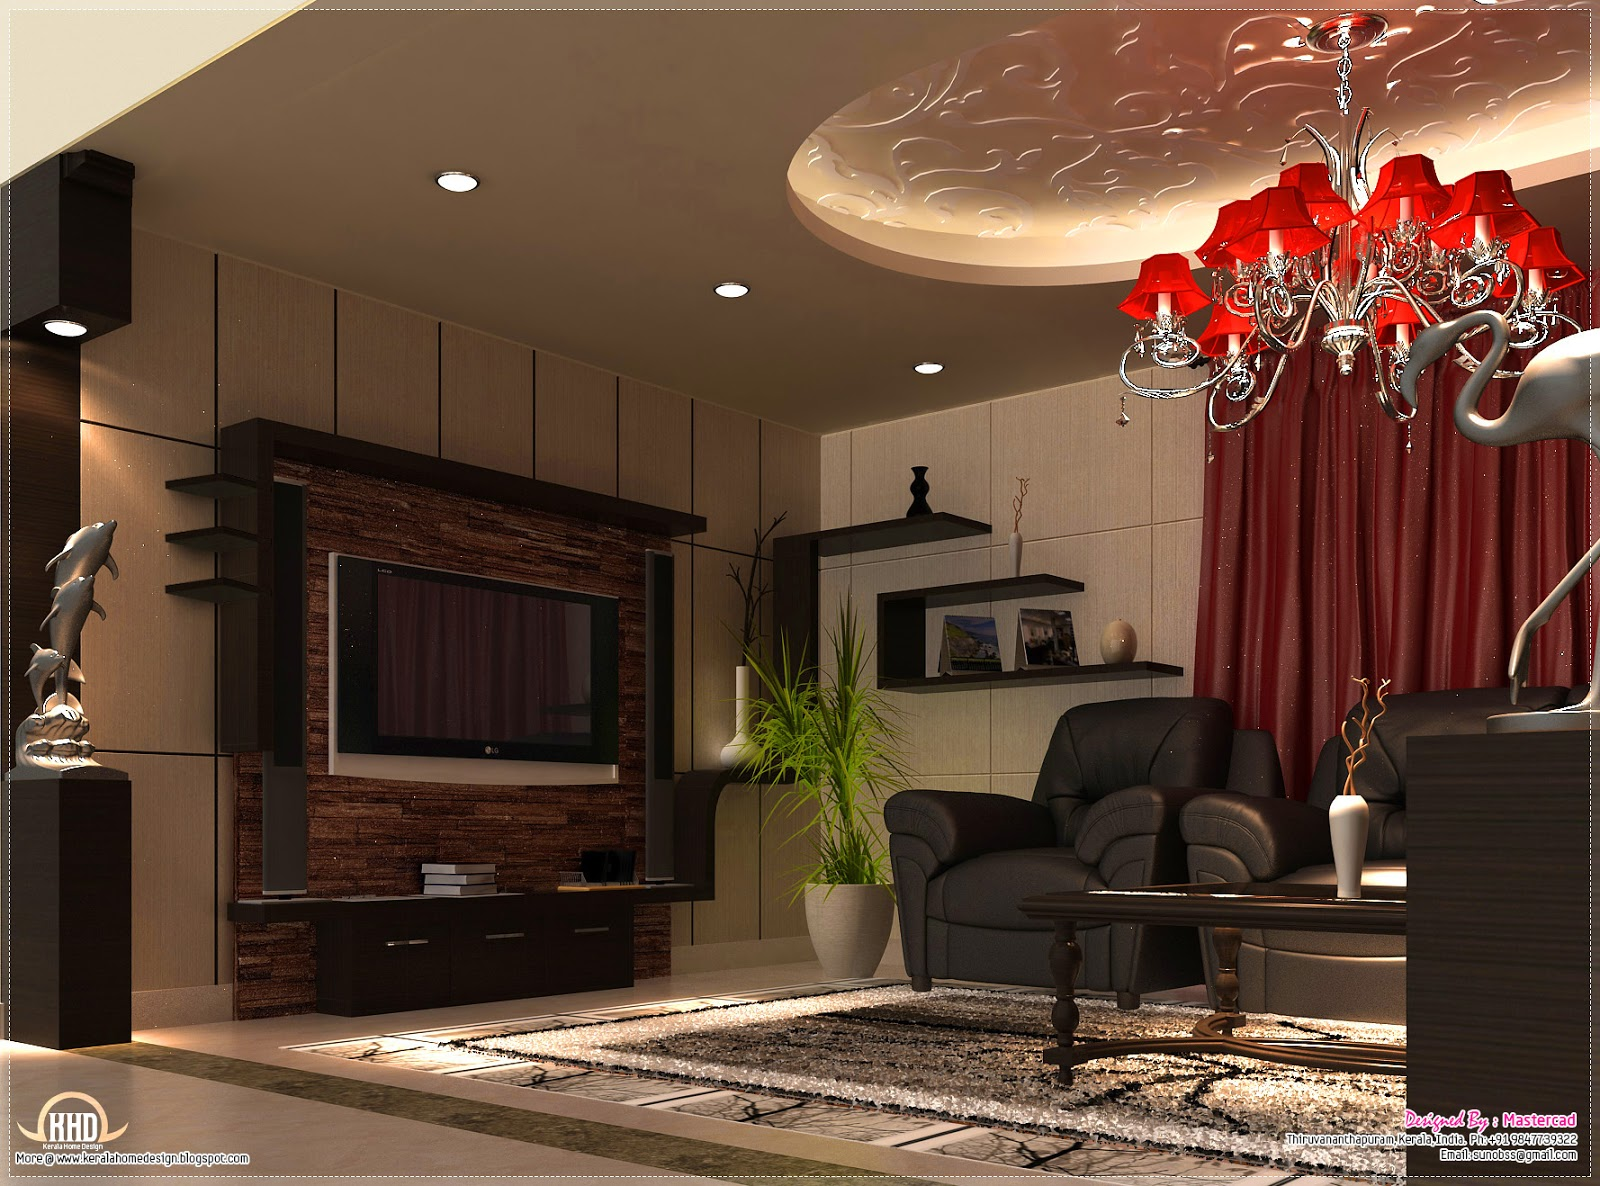 Interior design ideas kerala home design and floor plans for Mansion interior design